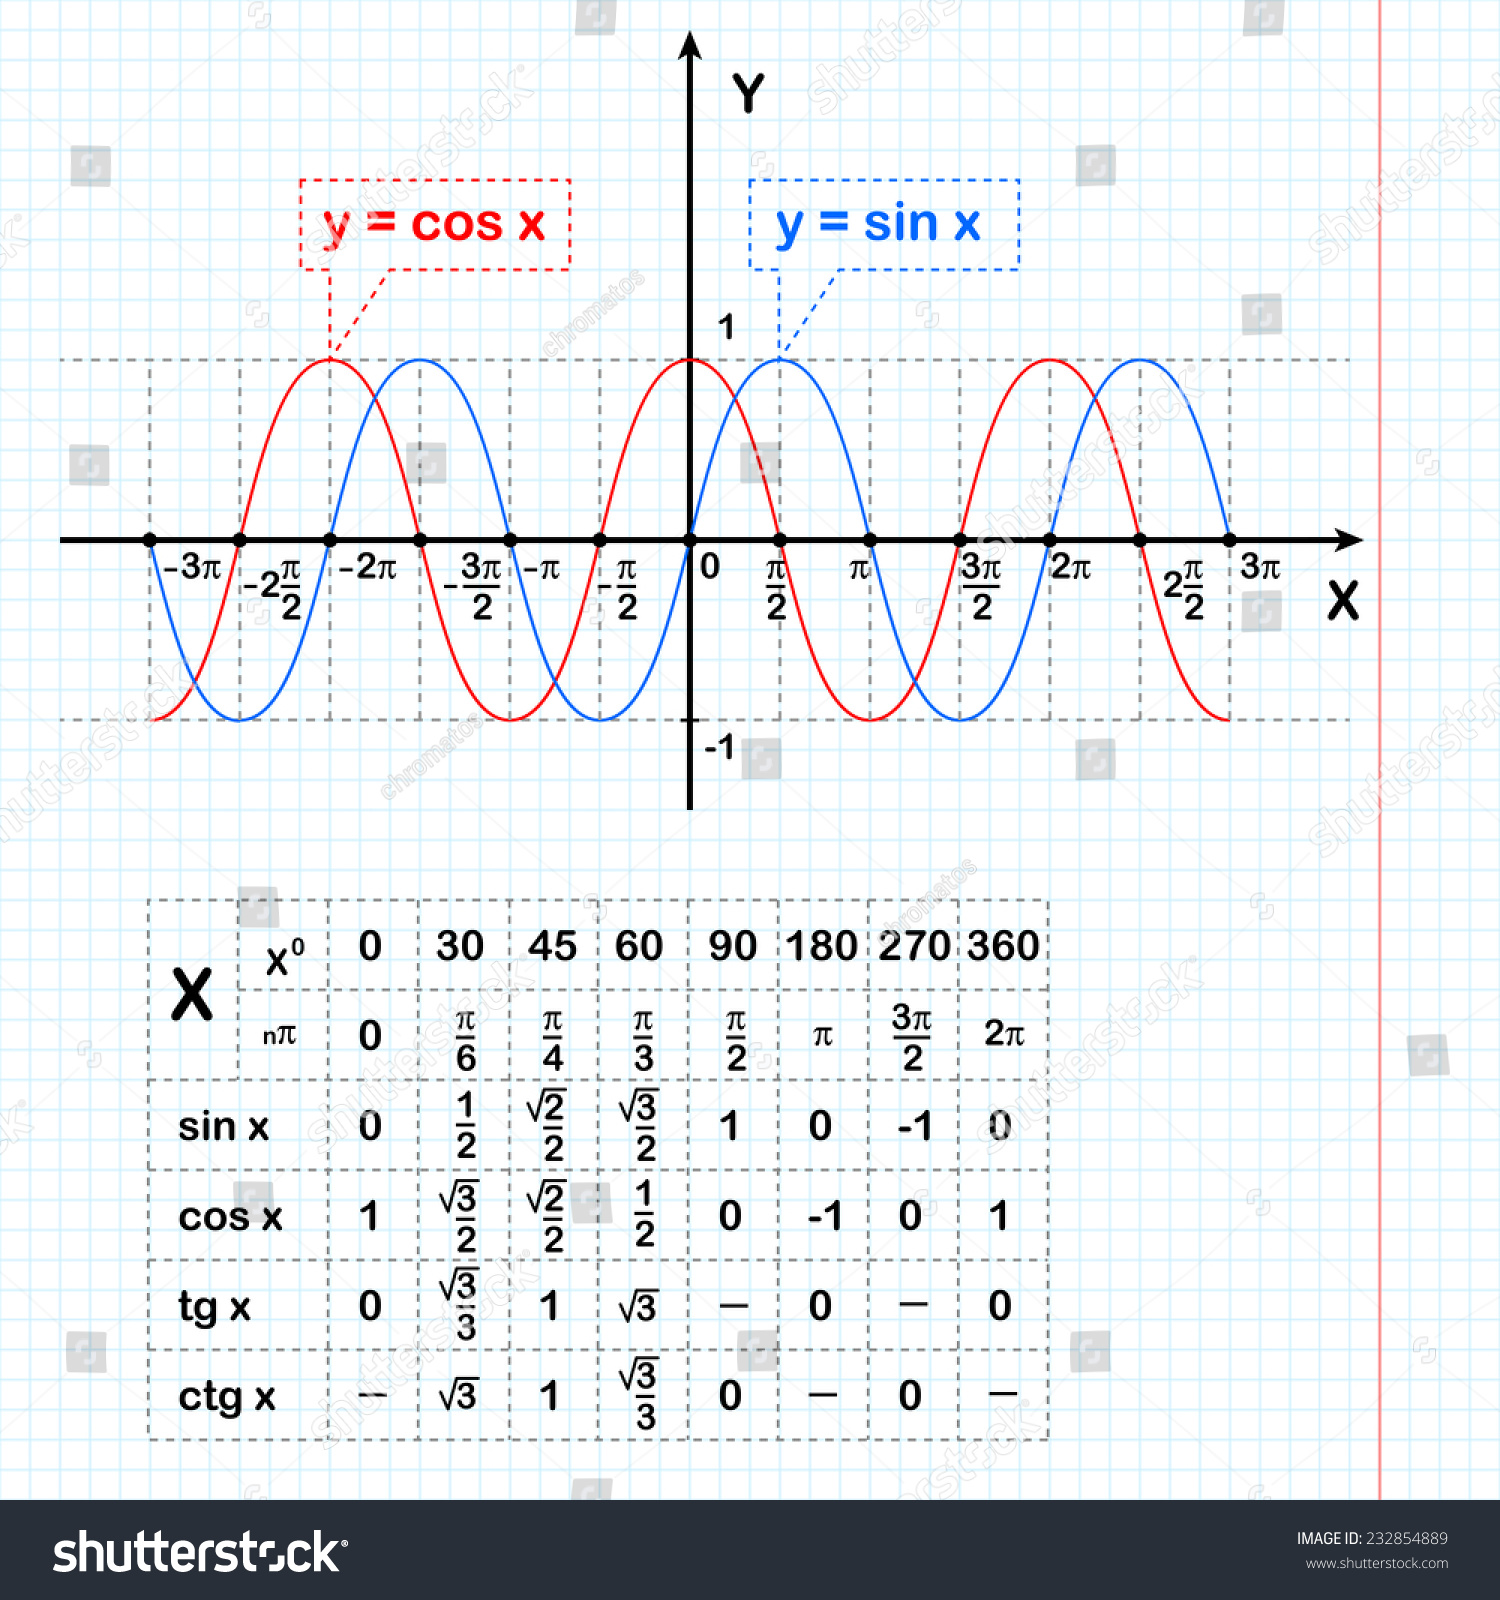 Trigonometric function table - Sine And Cosine Functions On Notebook Sheet With A Table Of Data 2d Illustration